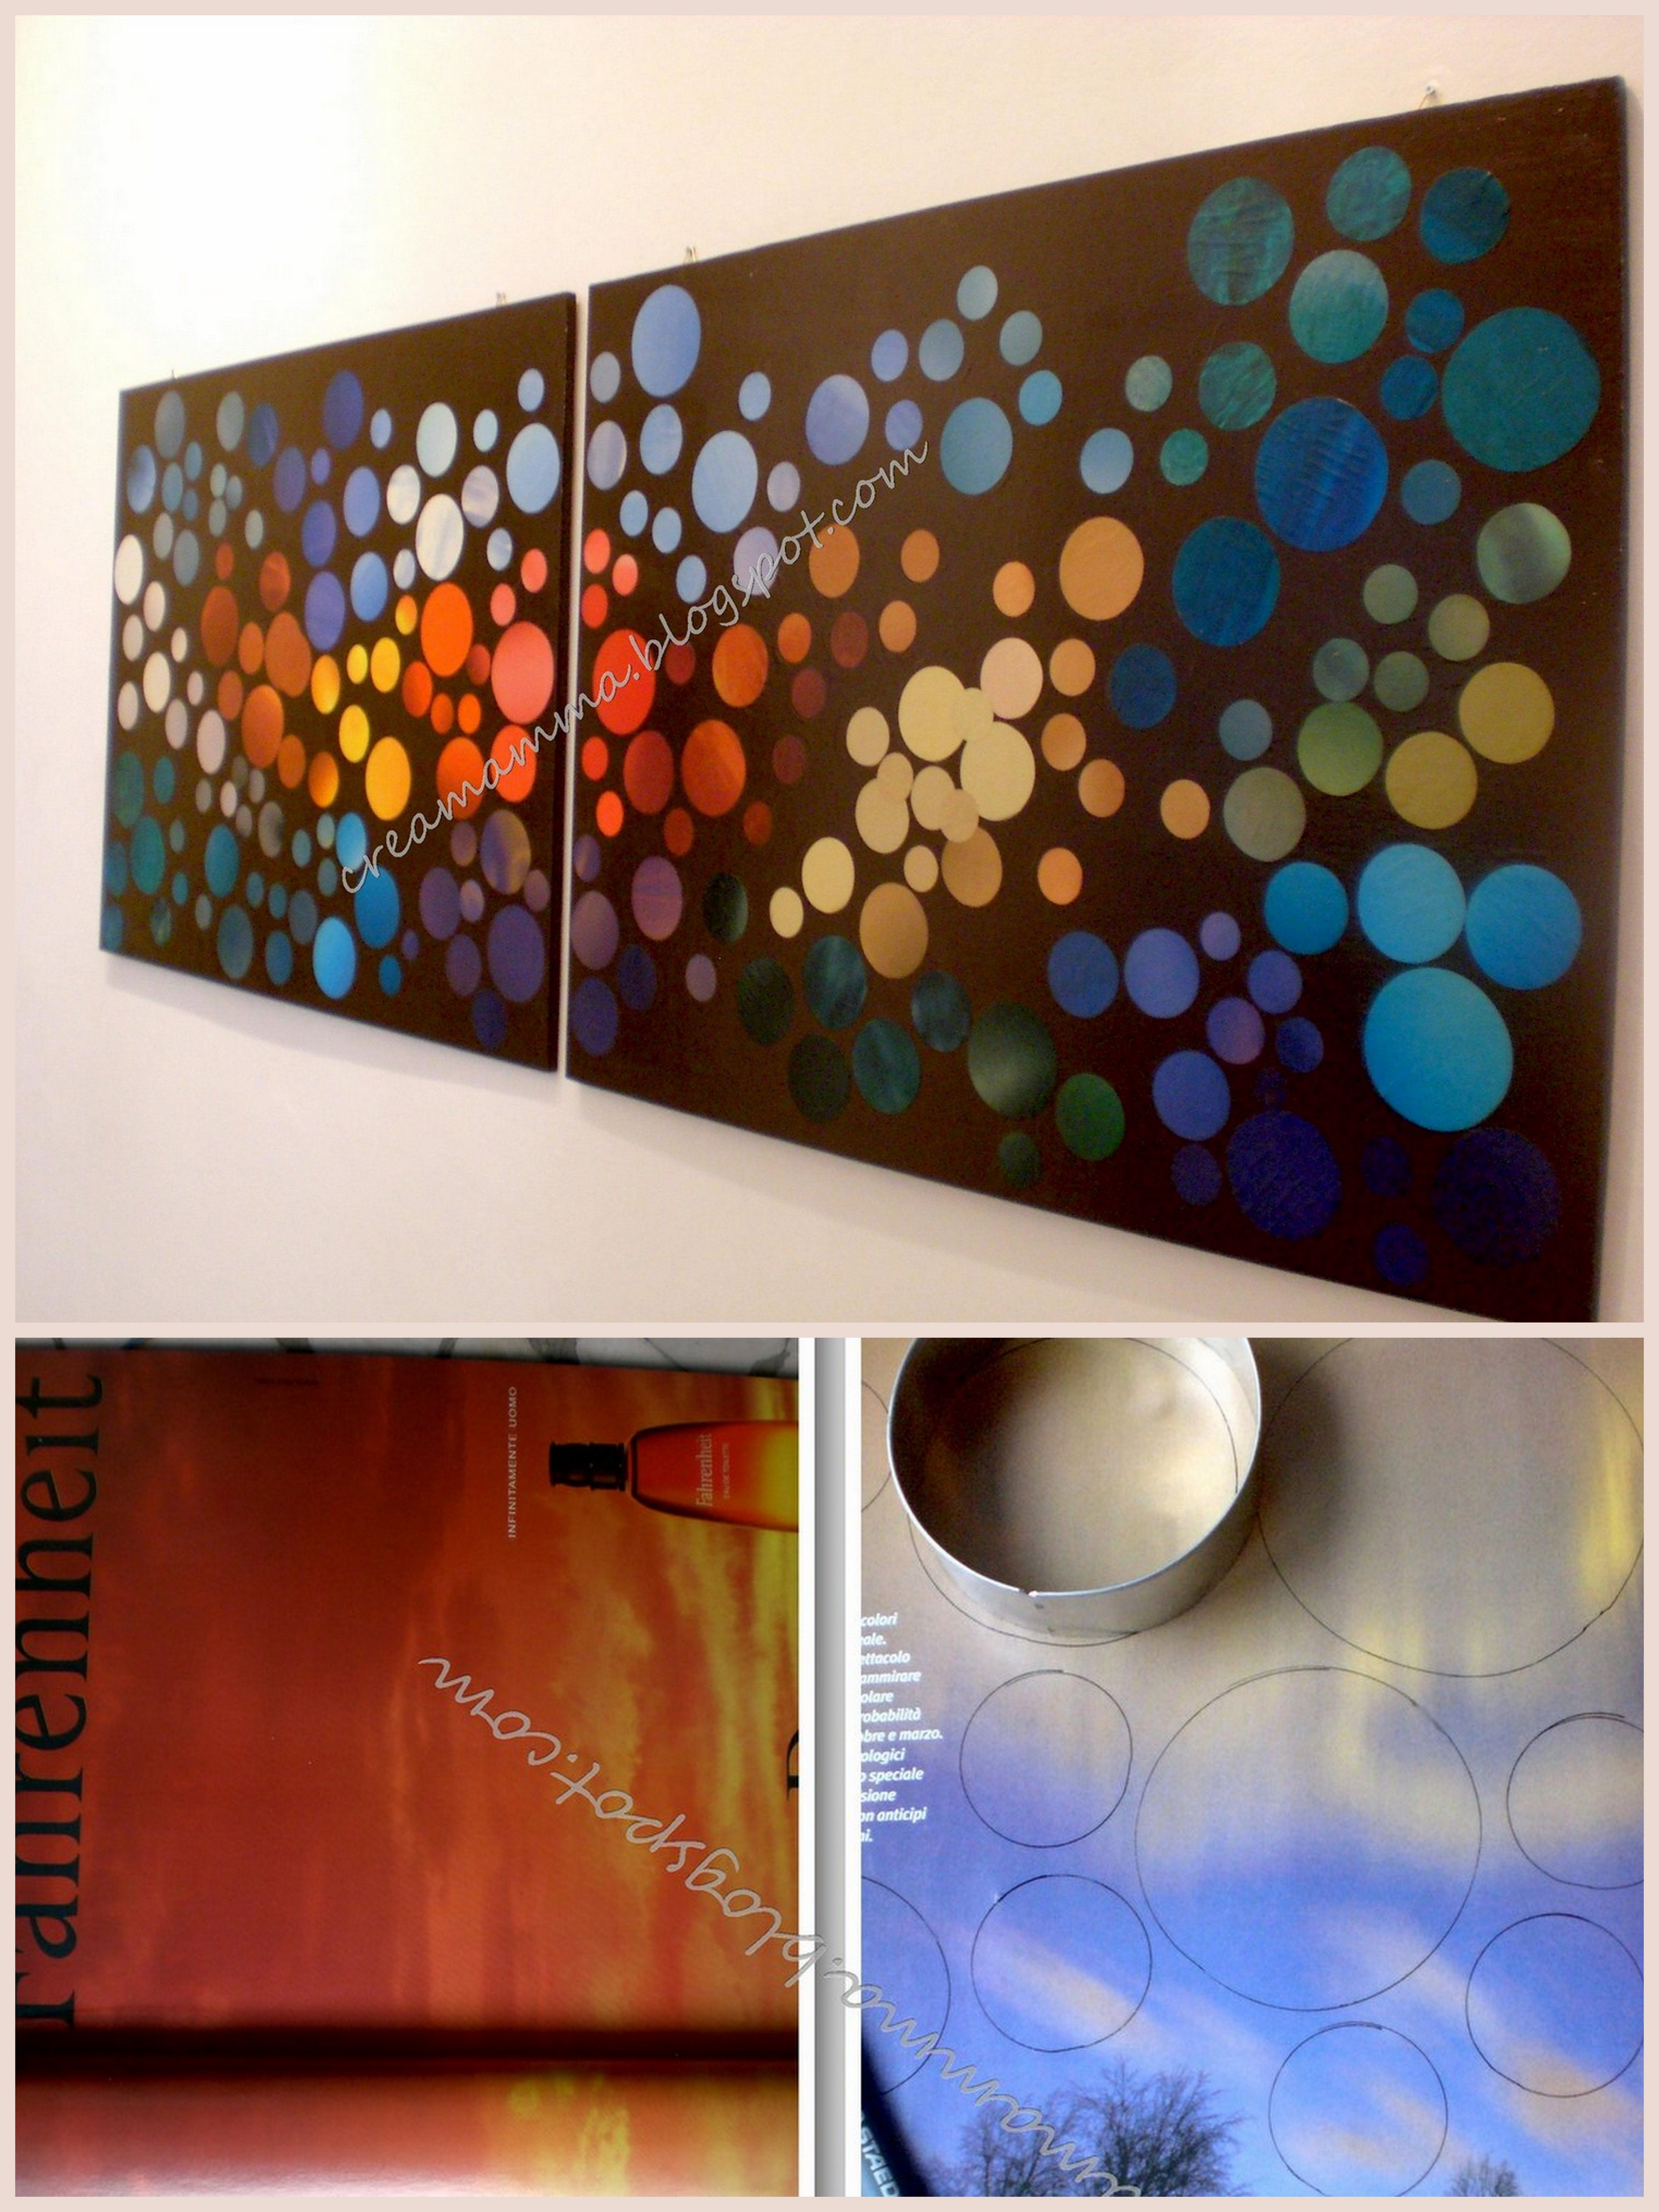 DIY Wall Art from Magazines - interesting...want to do this w/